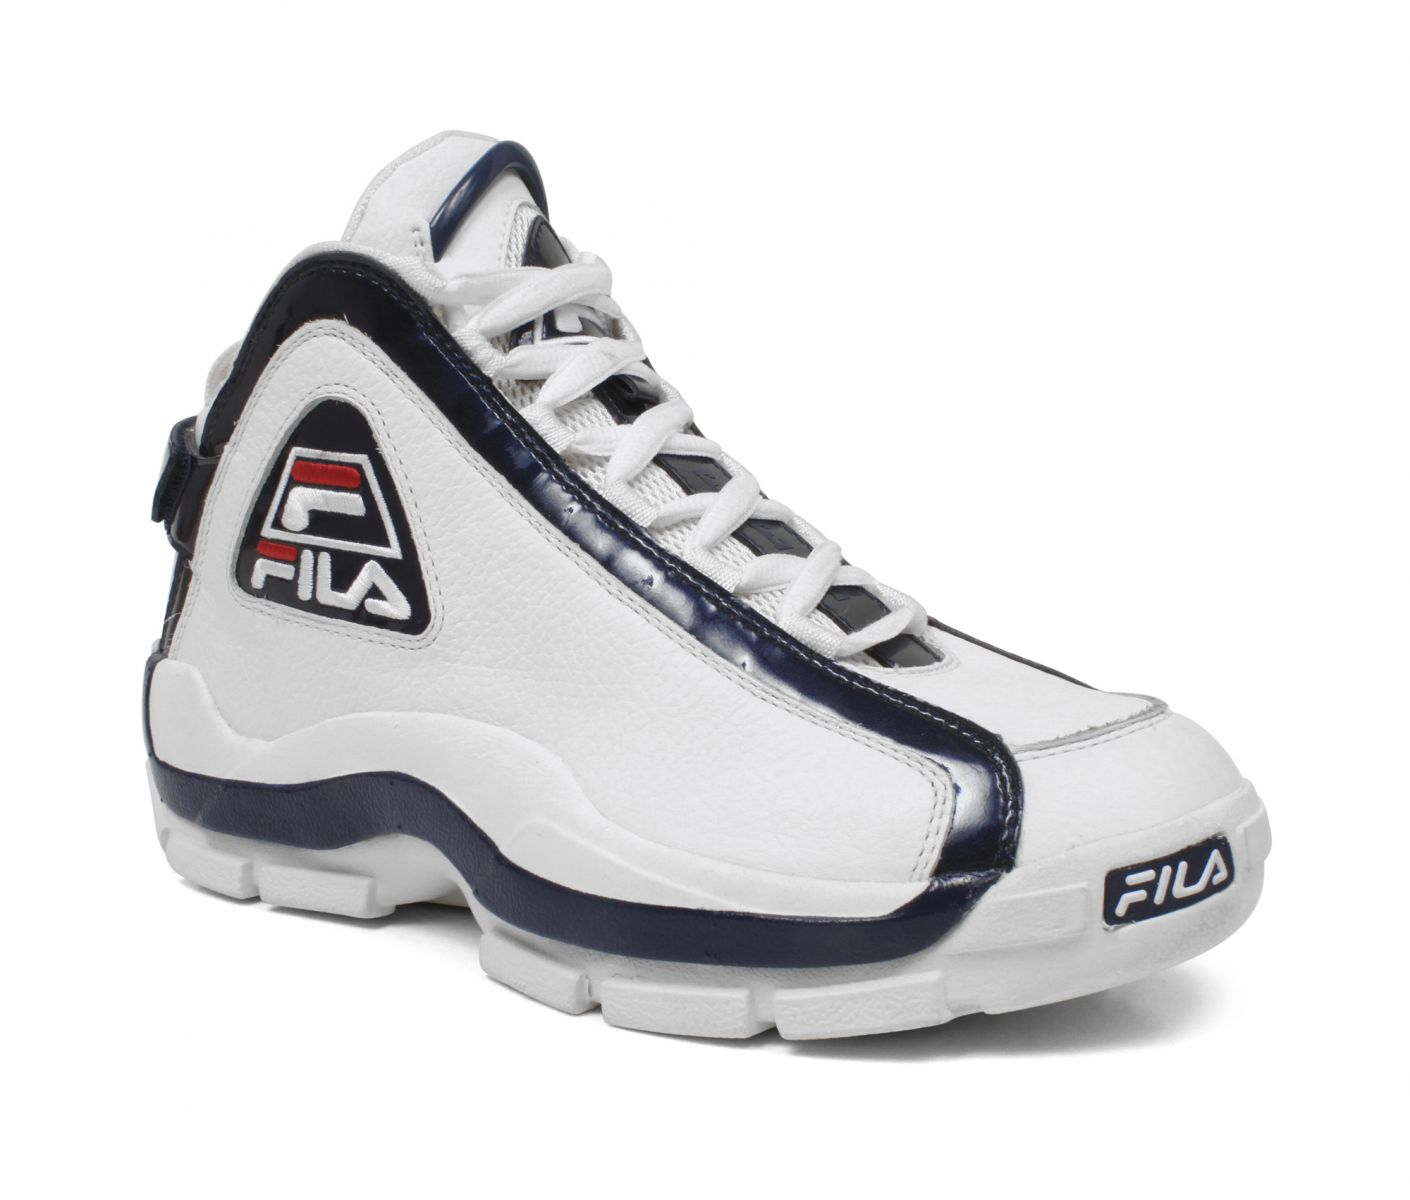 grant hill fila shoes 3d scanner